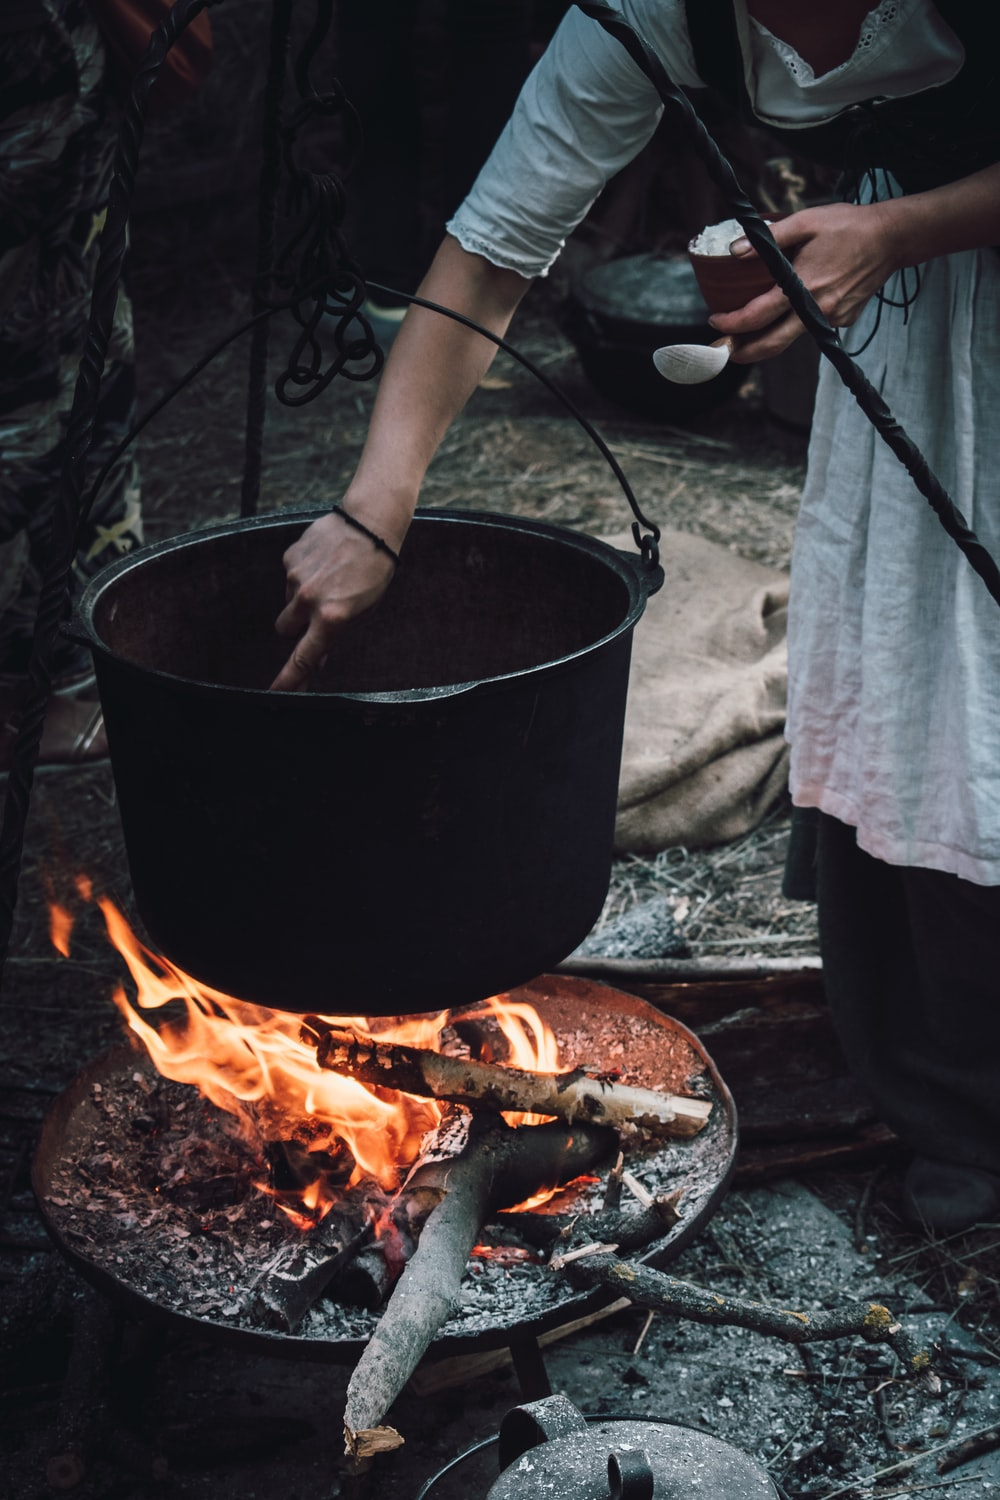 woman cooking on black metal cooking pot